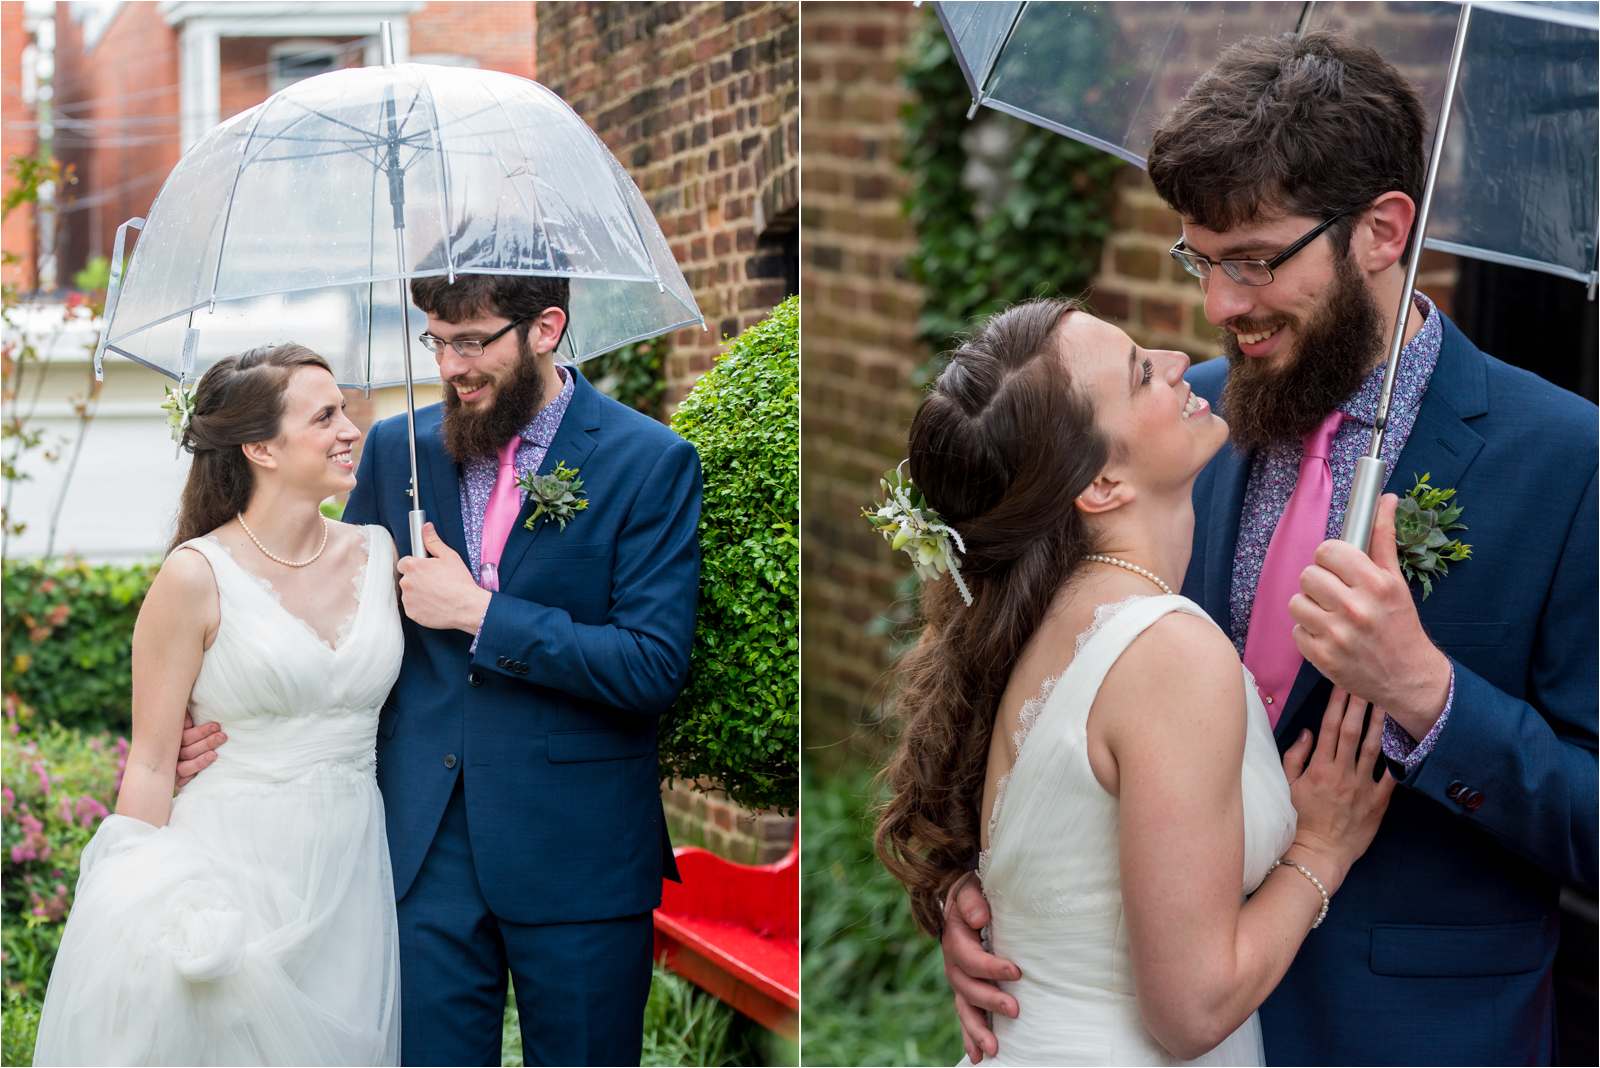 rainy-wedding-day-photography-sarah-barham-erik-davis-poe-museum-richmond-virginia-rva-virginia-museum-of-fine-arts-vmfa-rain-rainy-day-wedding-details-navy-suit-white-bridal-gown-focus-on-joy-photography